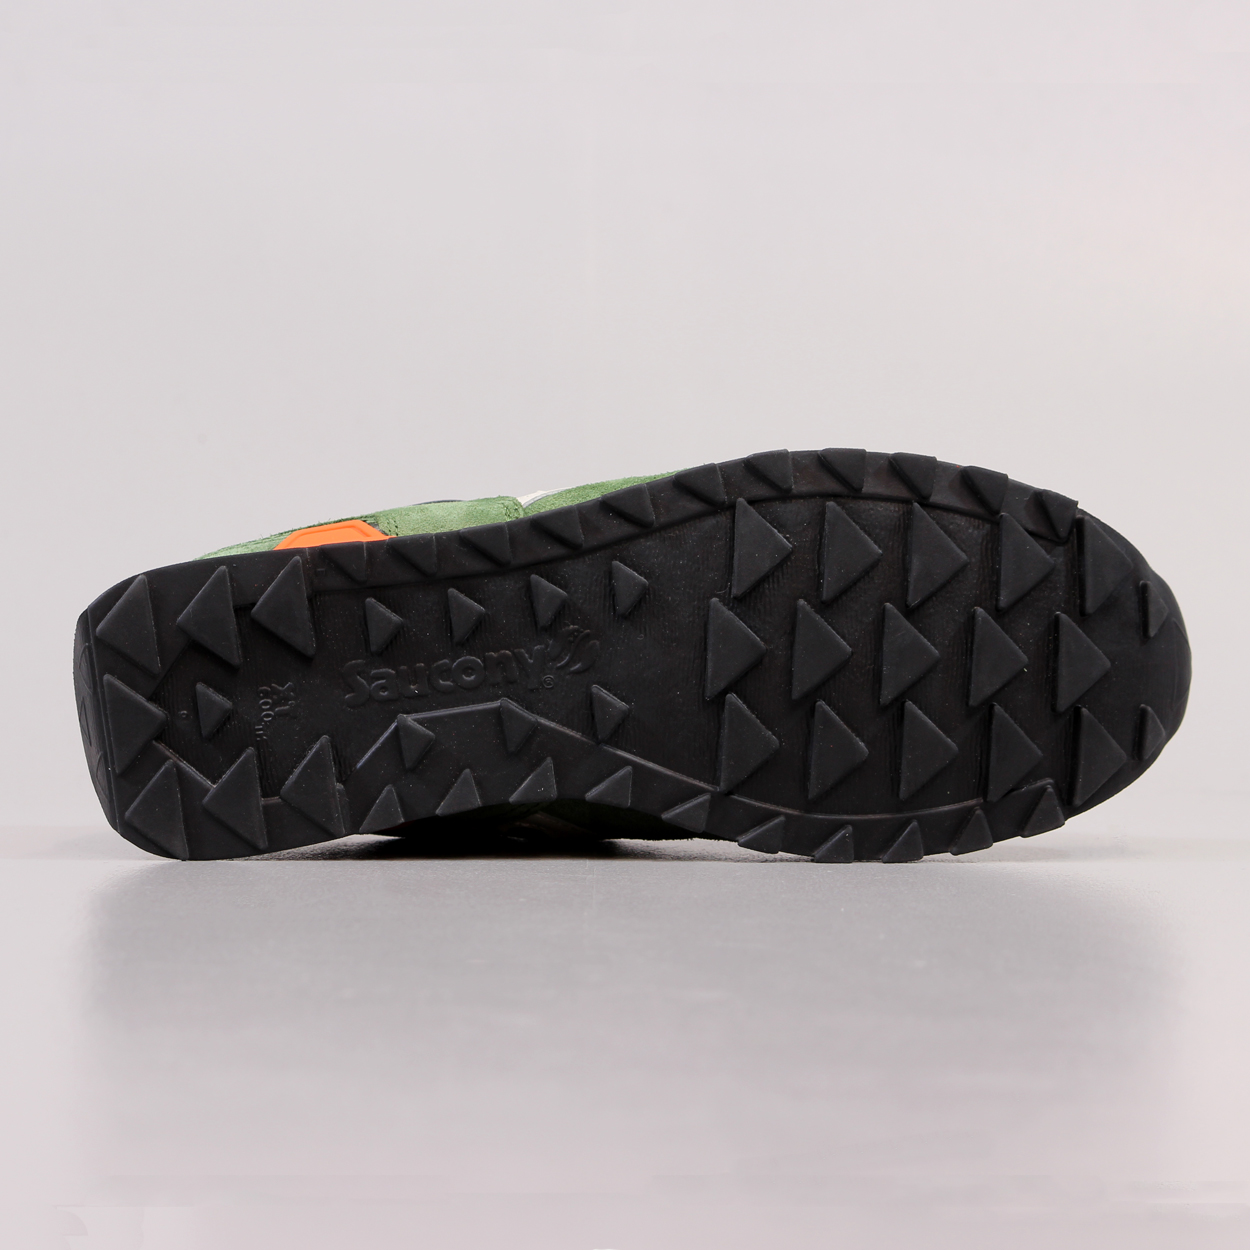 half off b54a4 28ffe Make your feet the business with these Saucony Originals with the contrasting  black, green and orange colours to add a retro style to your collection of  ...